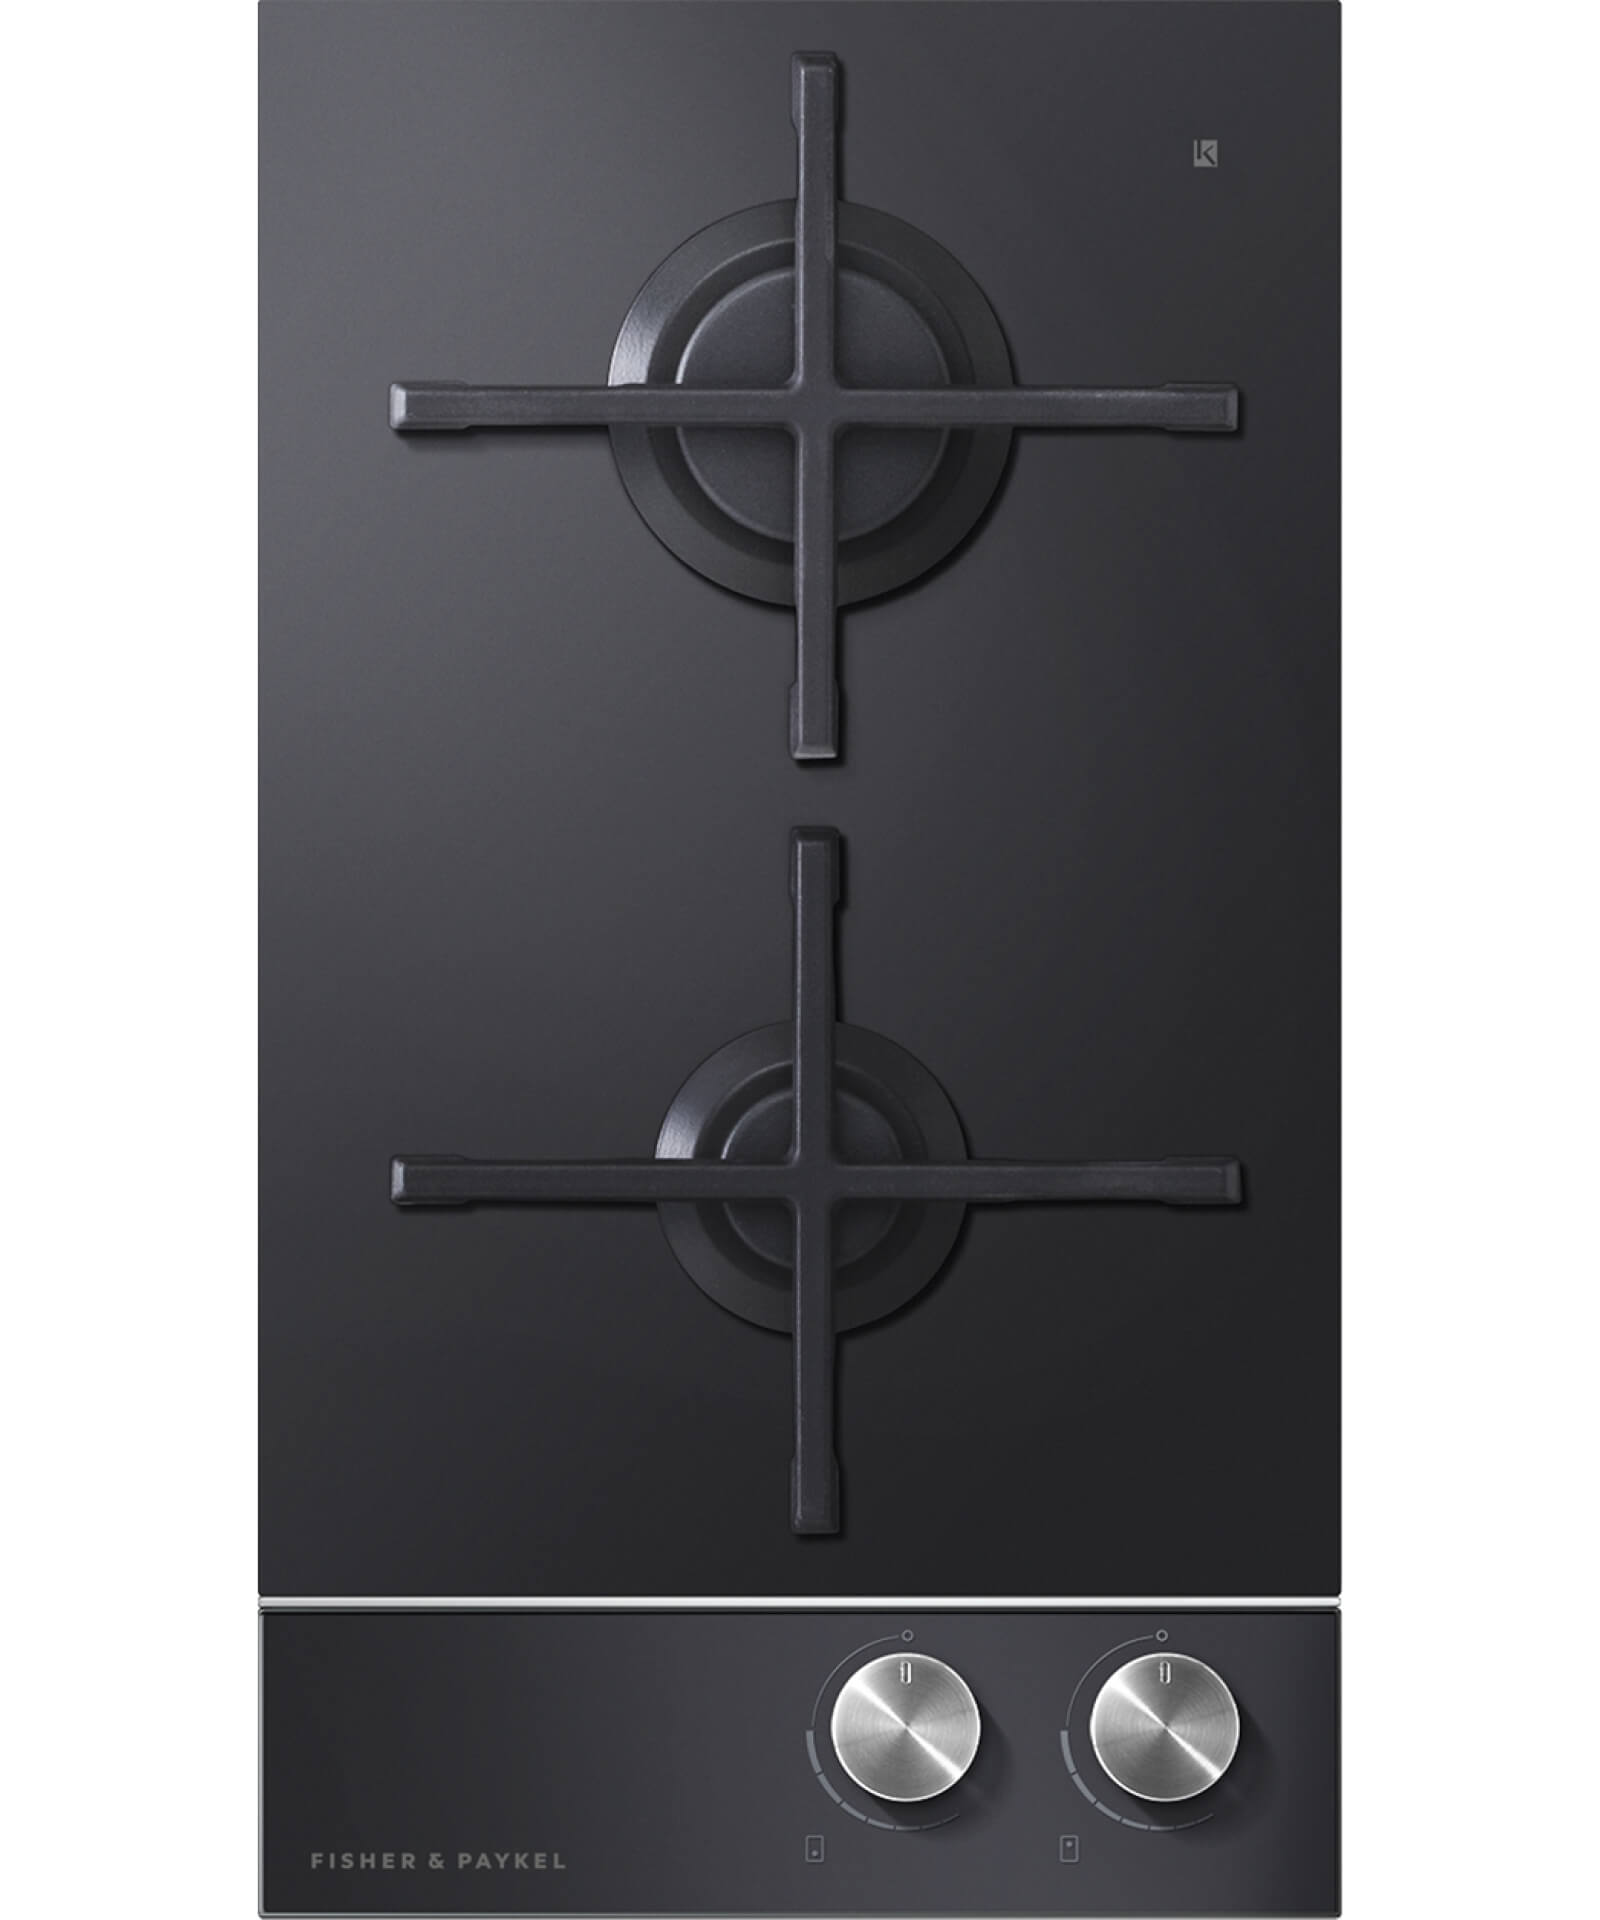 CG302DLPGB1 - 30cm Gas on Glass Hob - LPG - 81400